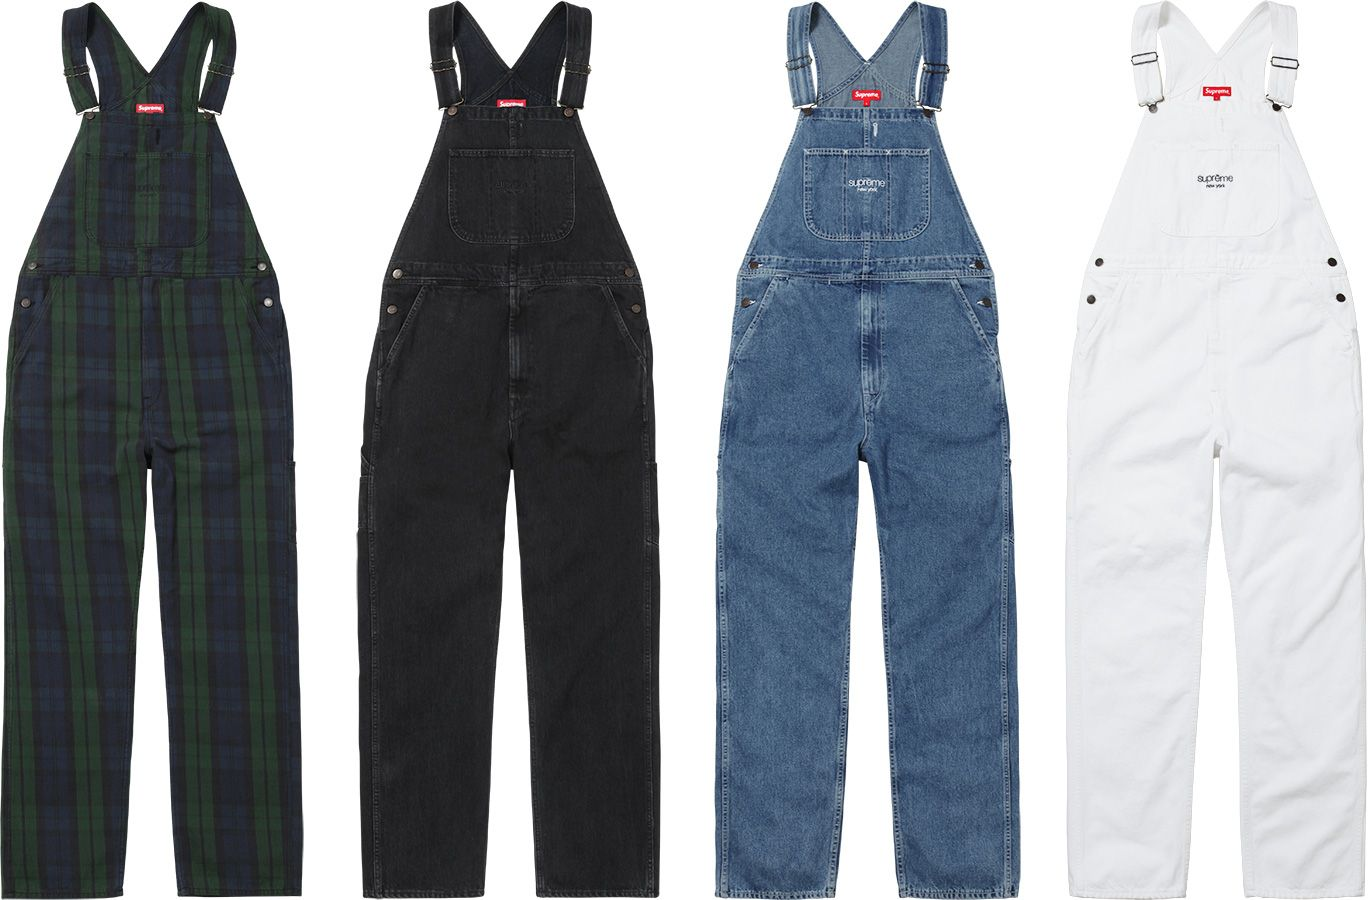 nouvelle collection 5c925 fb28b Supreme Denim Overalls | HYPE | Denim overalls, Overalls ...